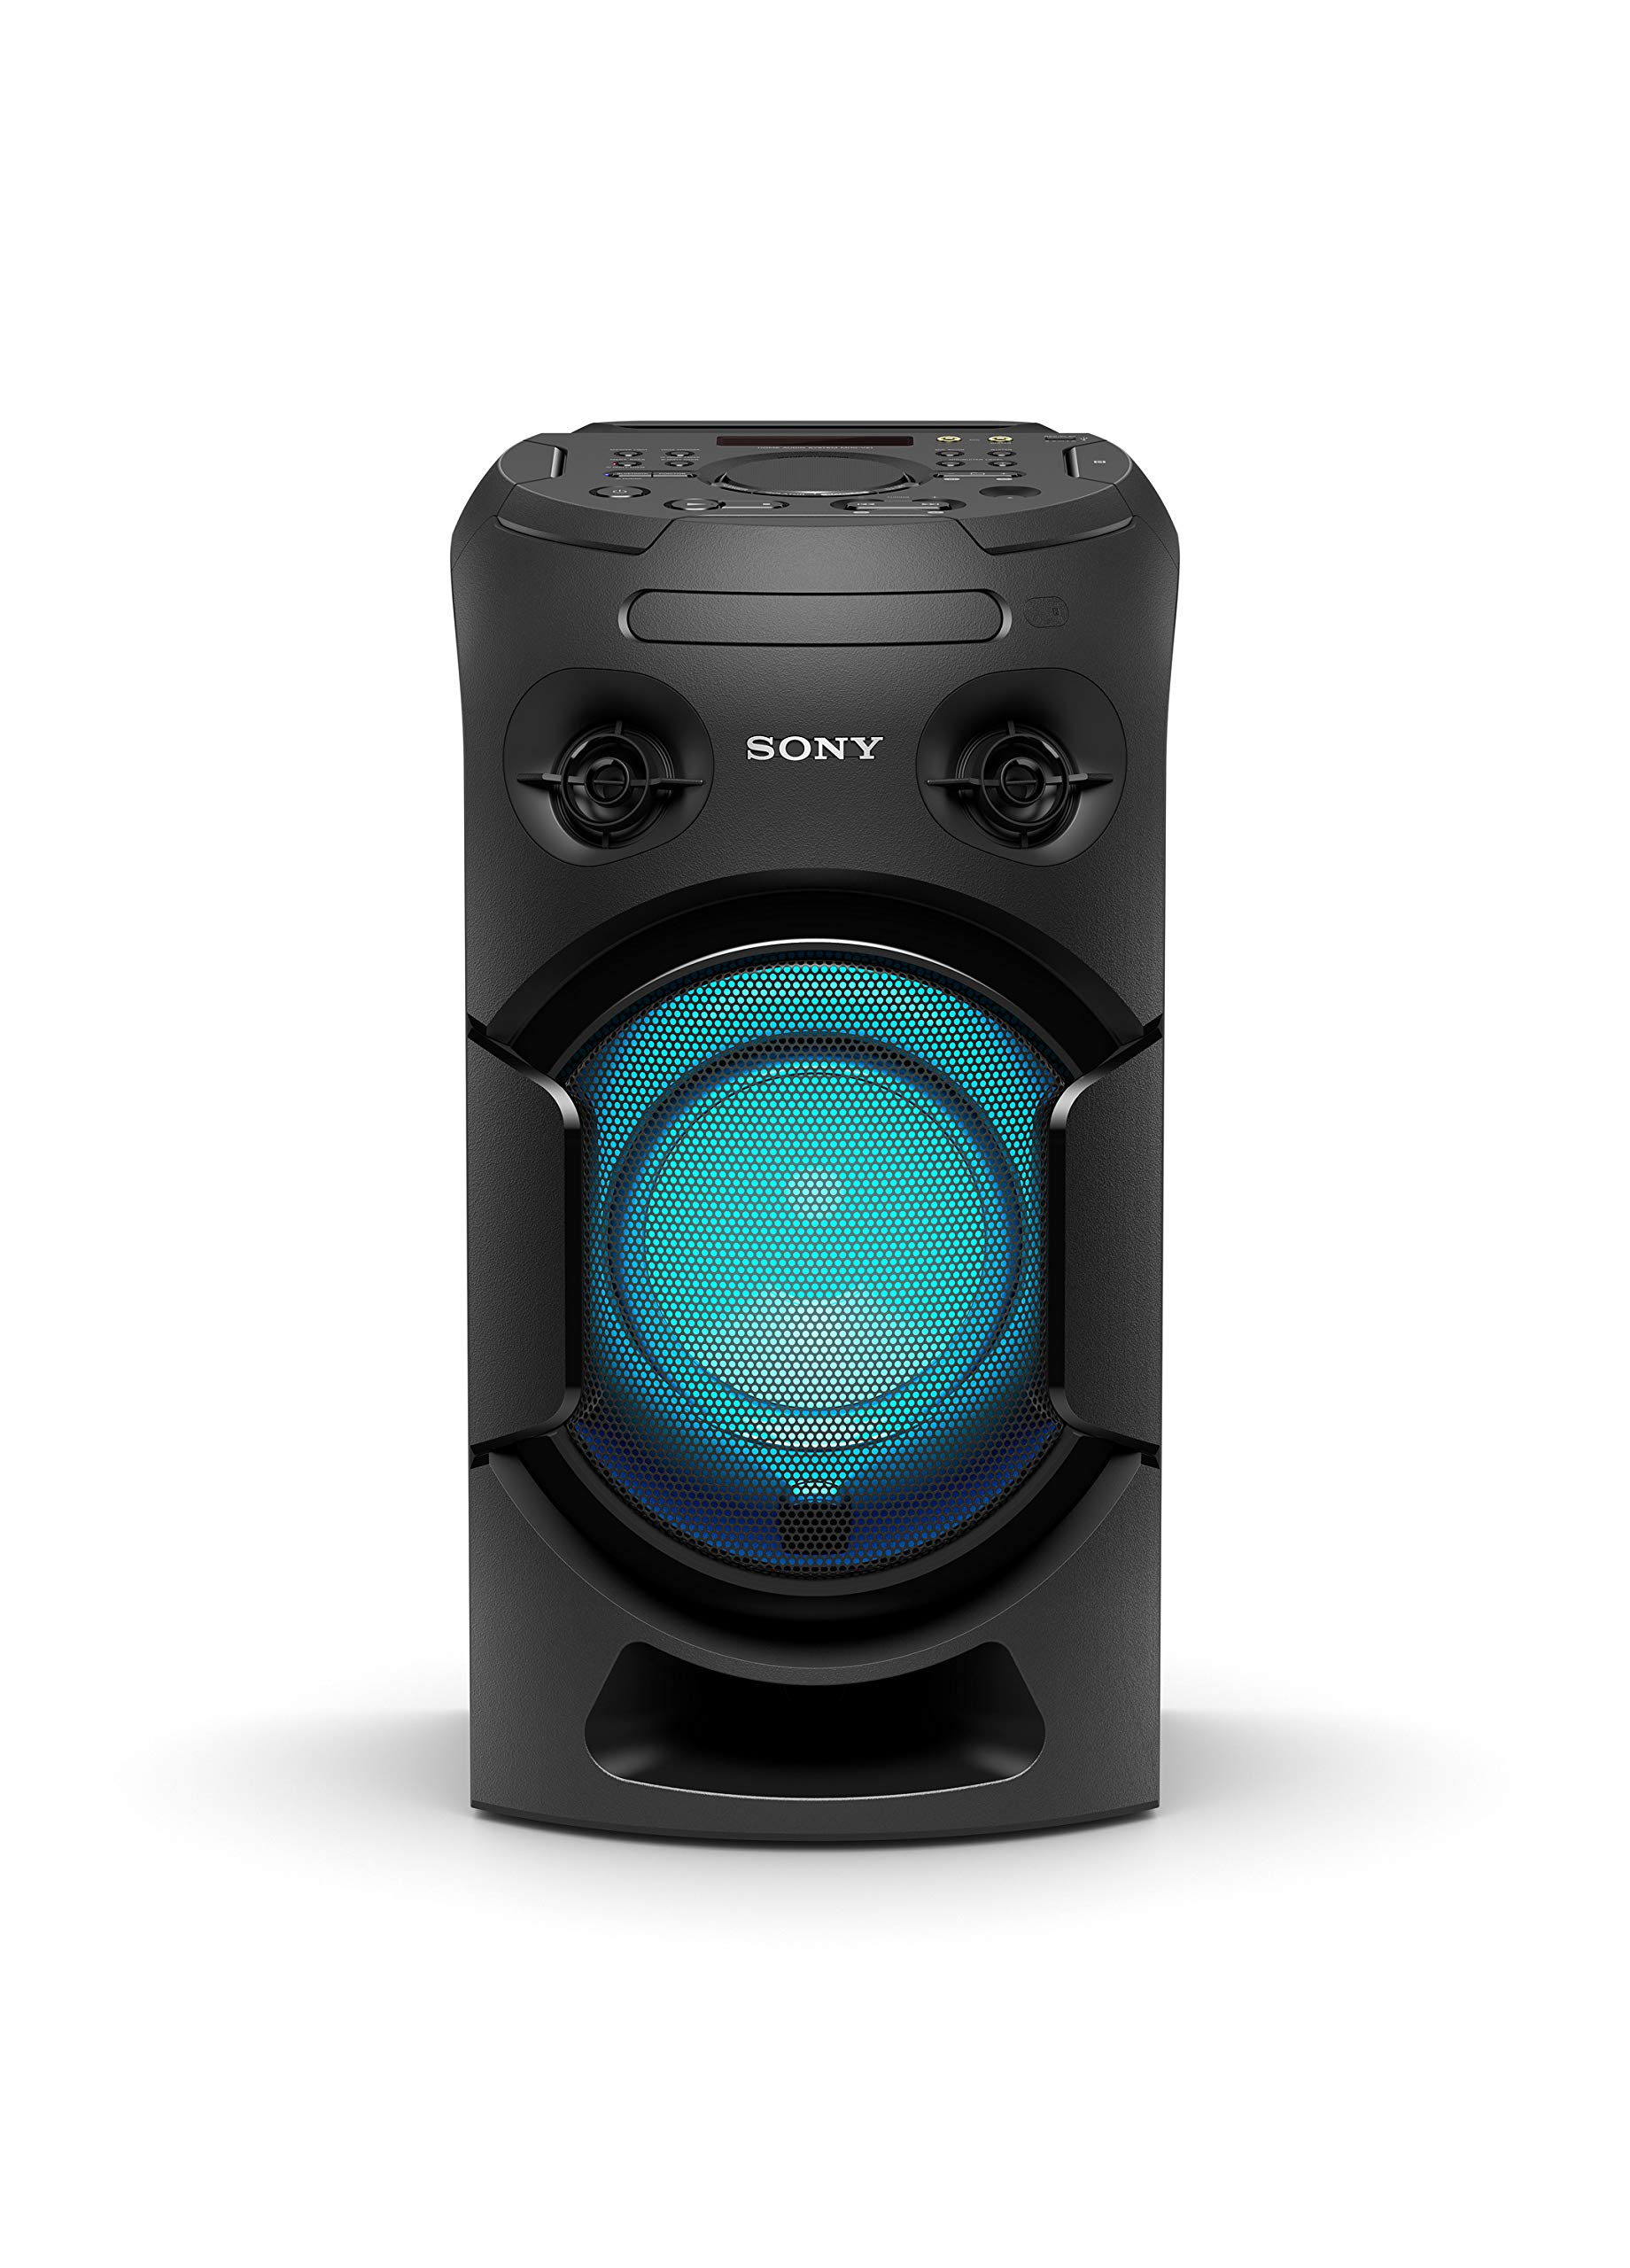 Sony MHC-V21 High Power Audio System with Bluetooth by Sony